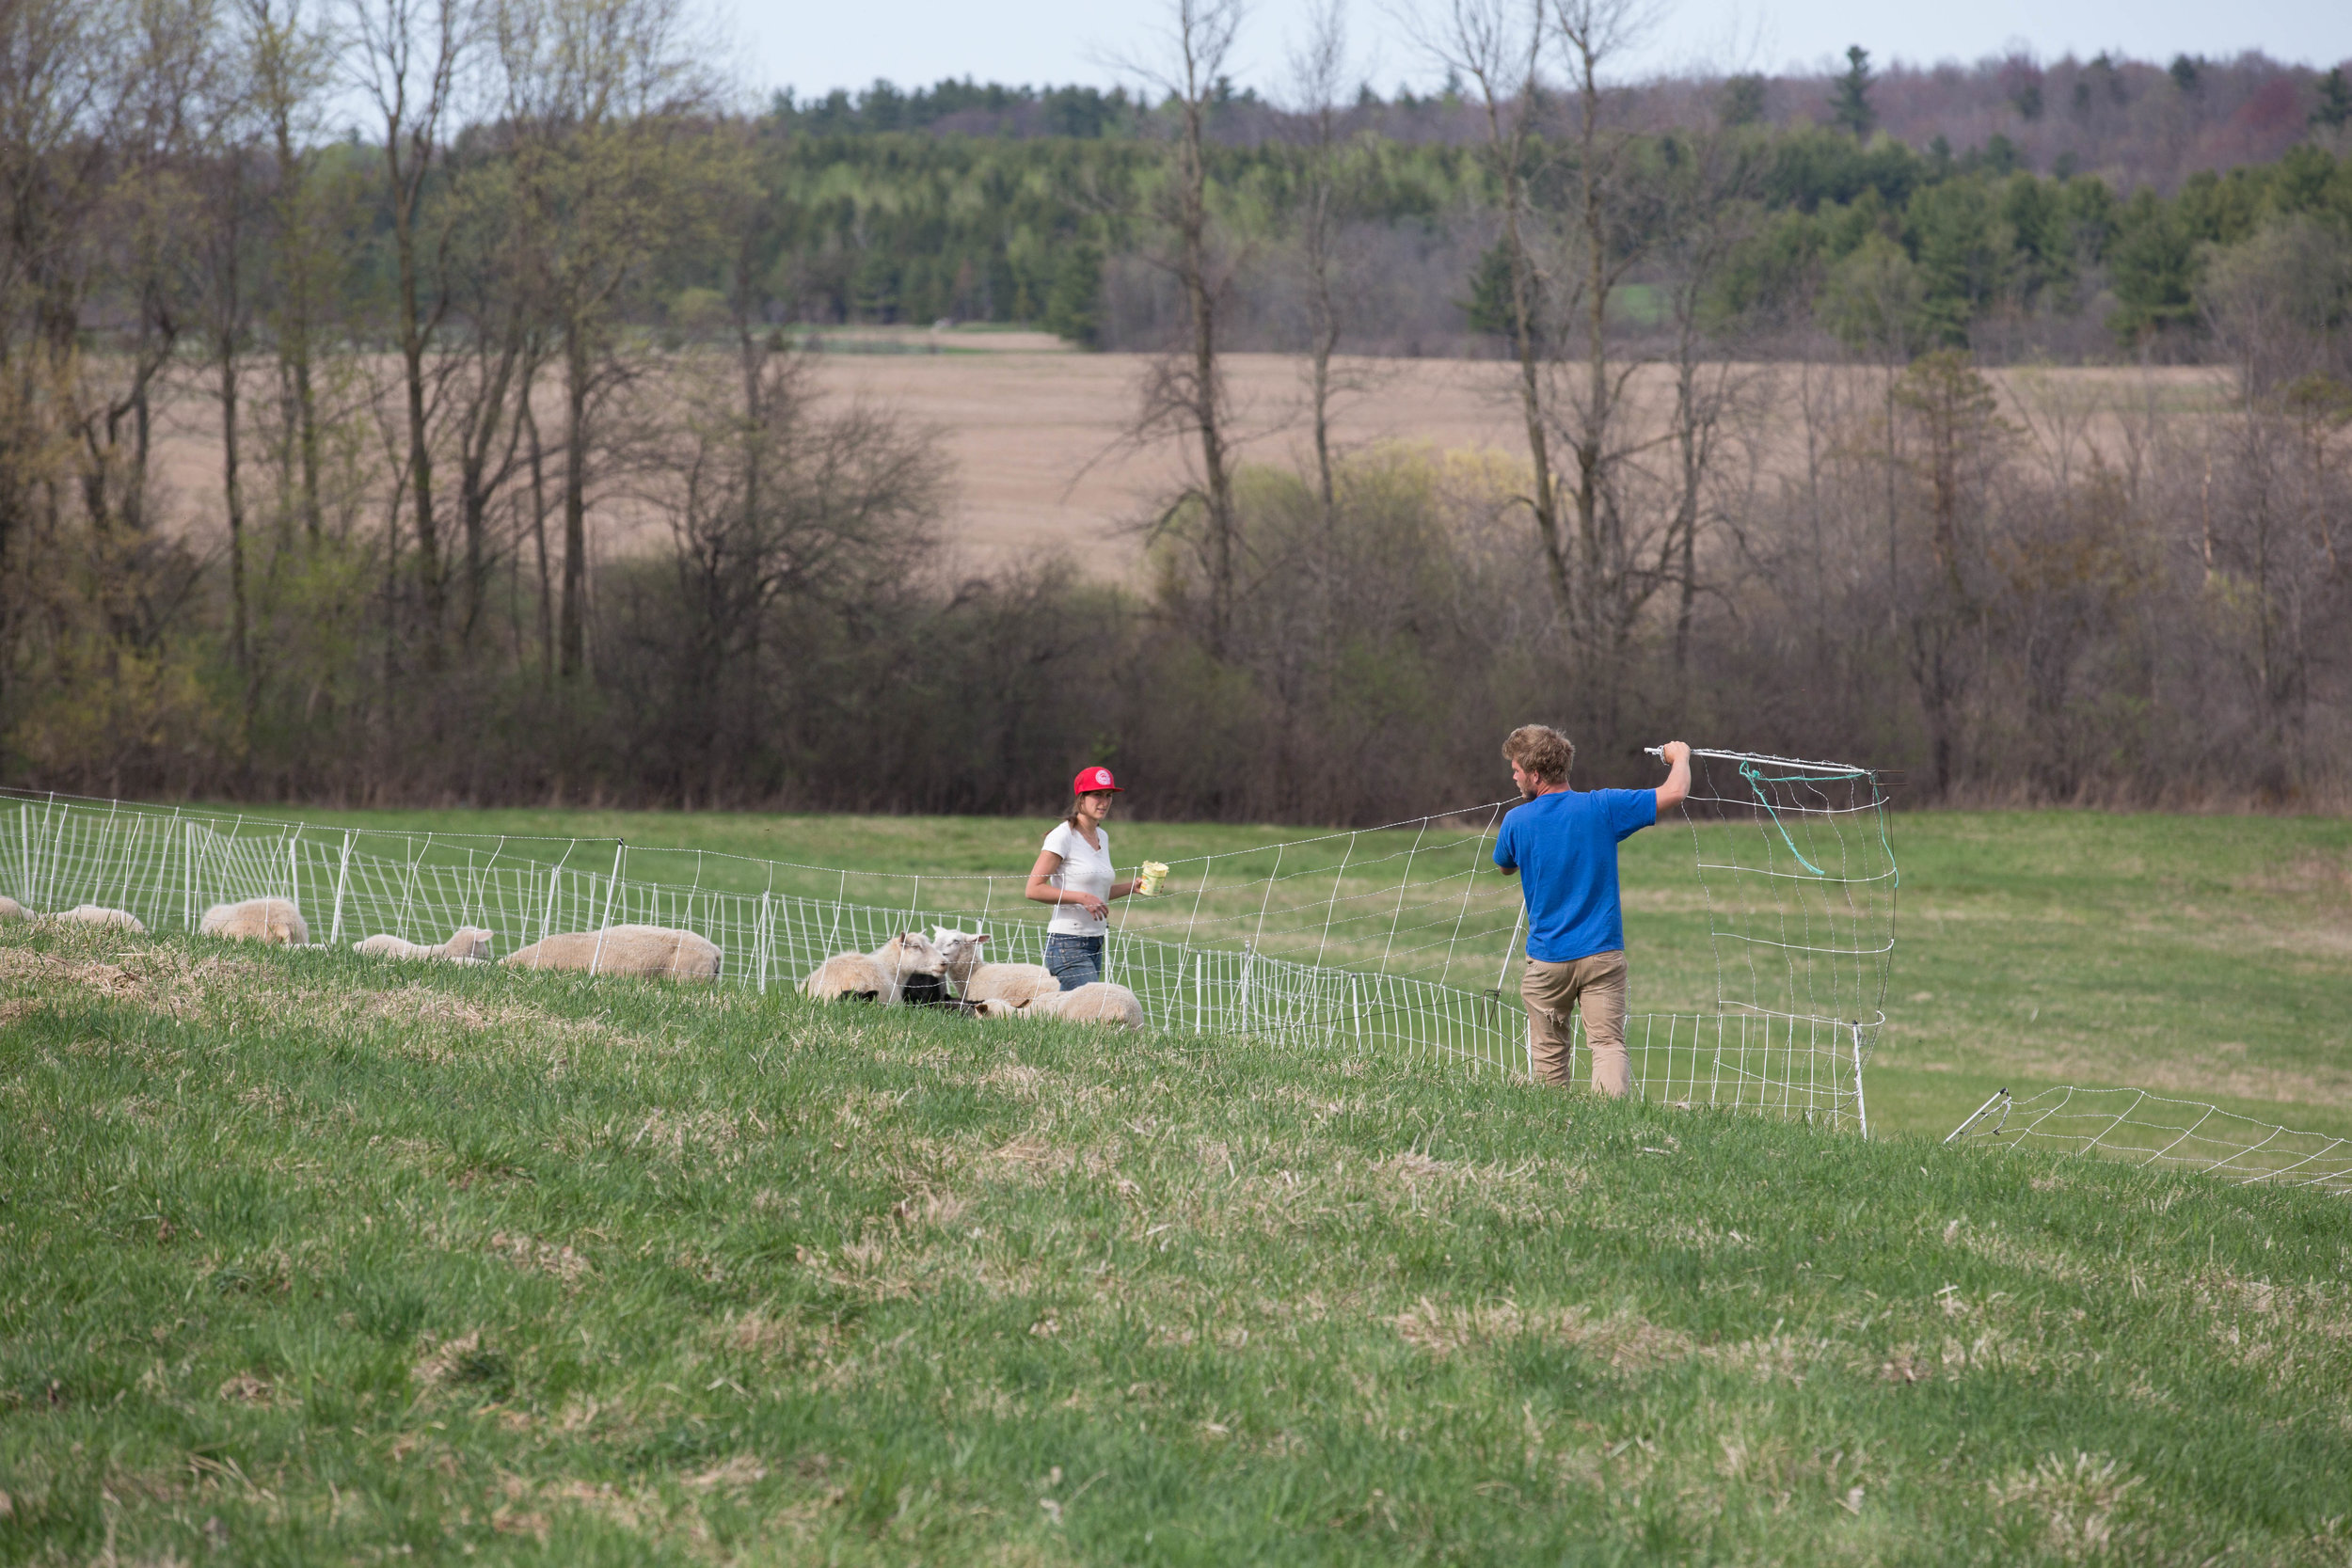 Vera Simon-Nobes and Michael Haulenbeek moving their flock of sheep using electric fencing.